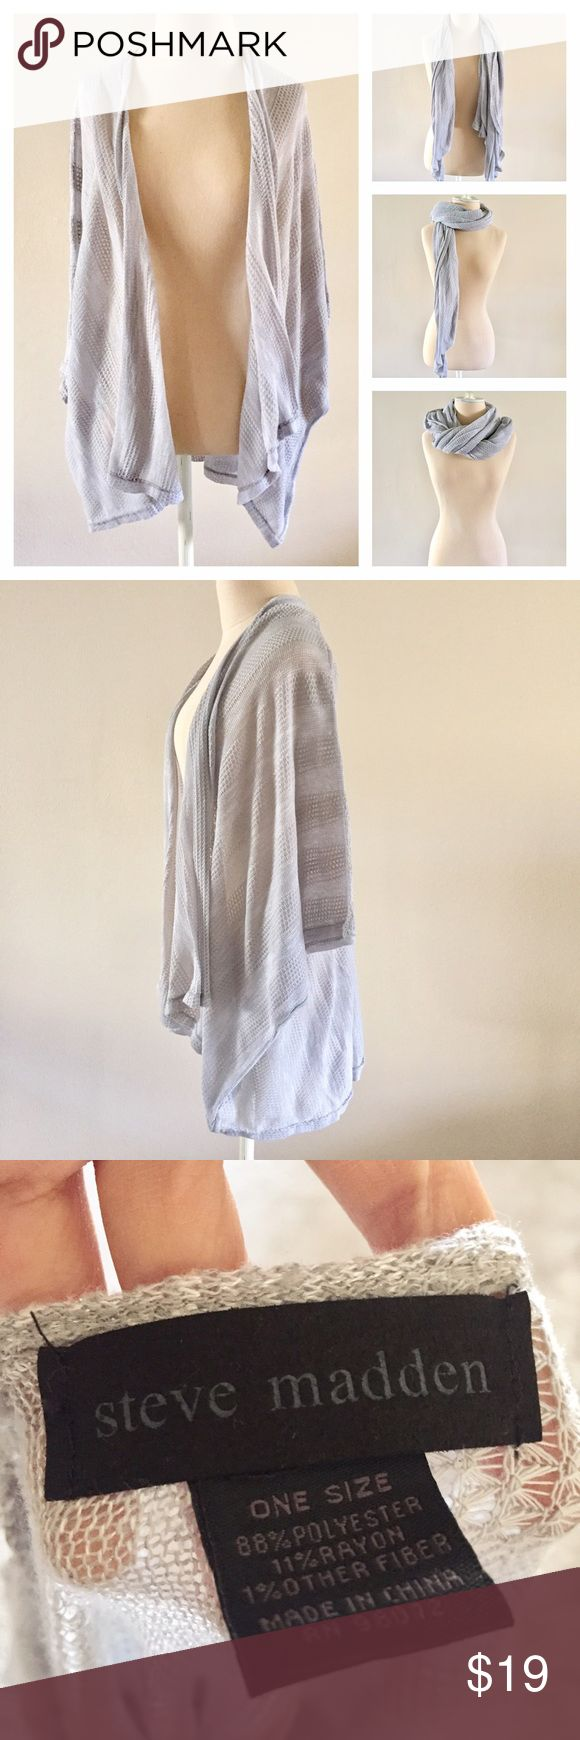 Steve Madden Cardigan and Scarf Who doesn't love convertible clothing items?? This gray and silver cardigan by Steve Madden doubles as a scarf (meant to be used for either option). One size. Great find! Steve Madden Sweaters Cardigans